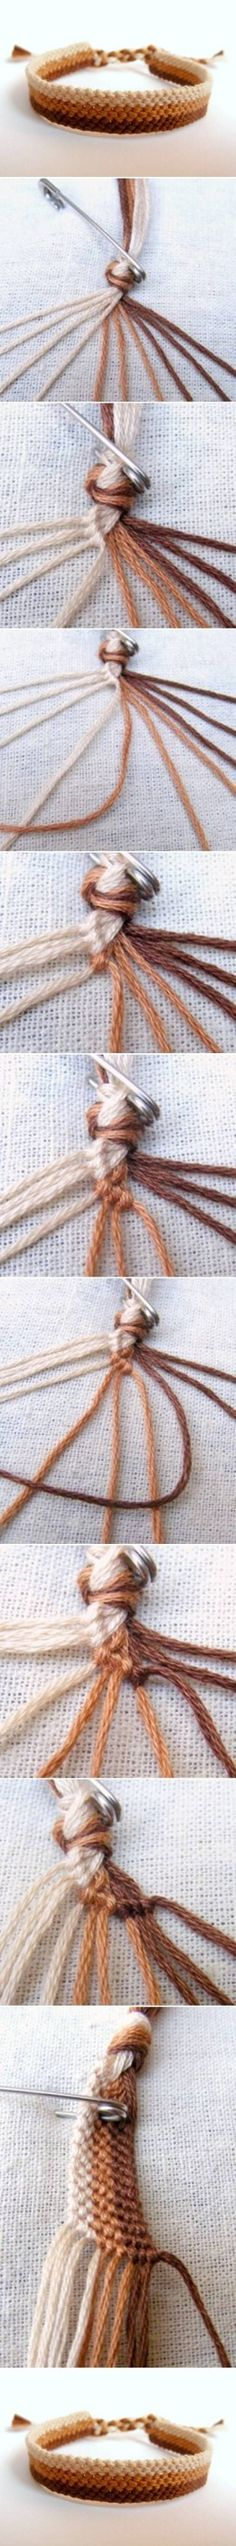 DIY Easy Weave Bracelet by christina.feyduncan